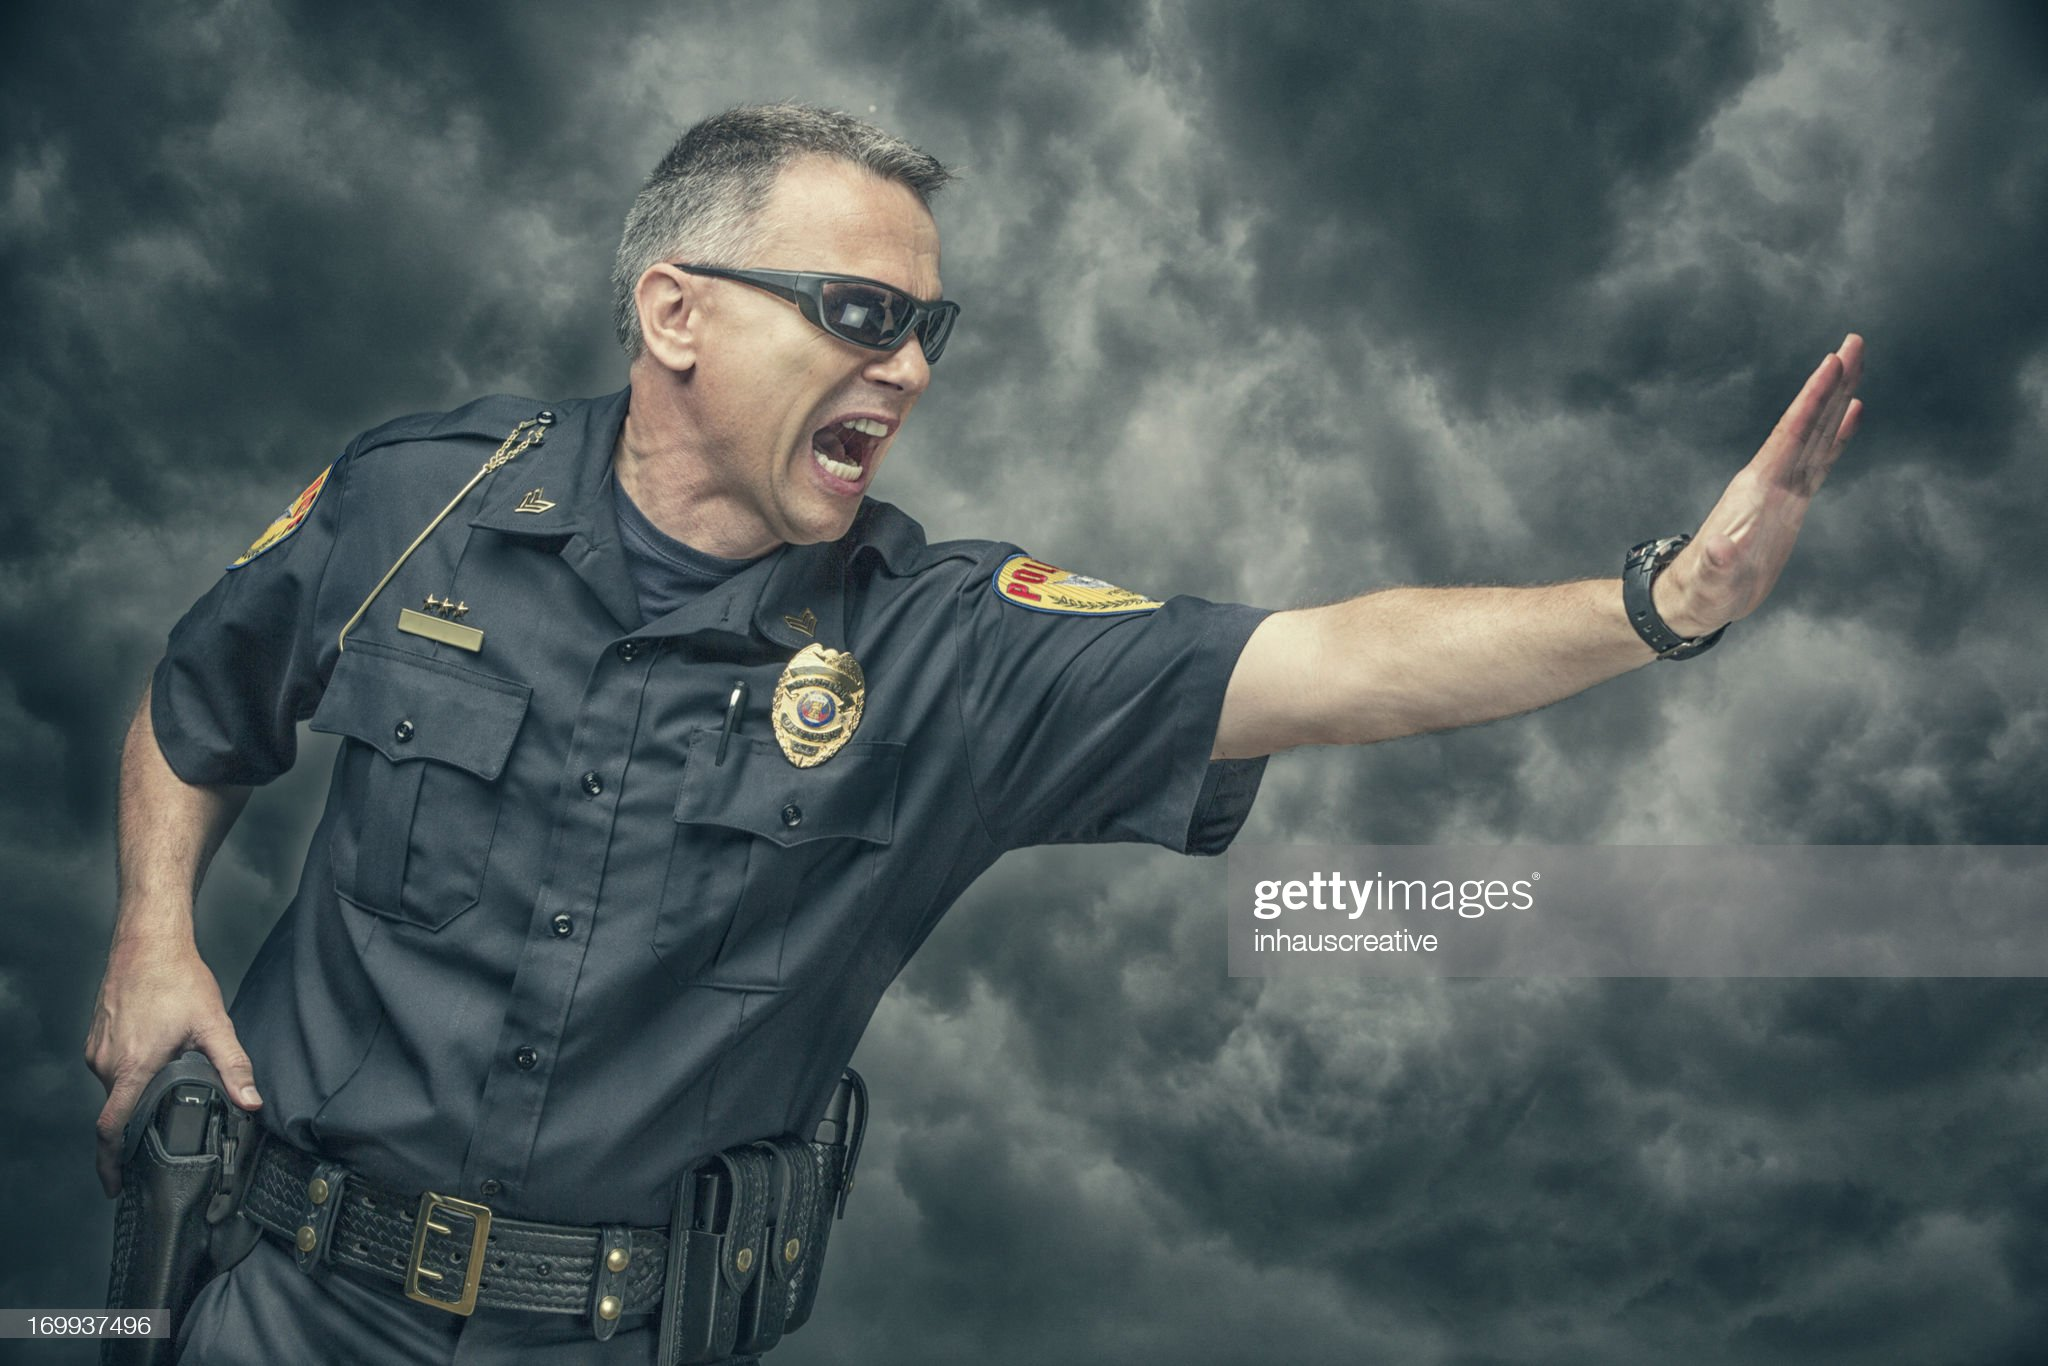 https://media.gettyimages.com/photos/policeman-yelling-and-gesturing-to-stop-picture-id169937496?s=2048x2048